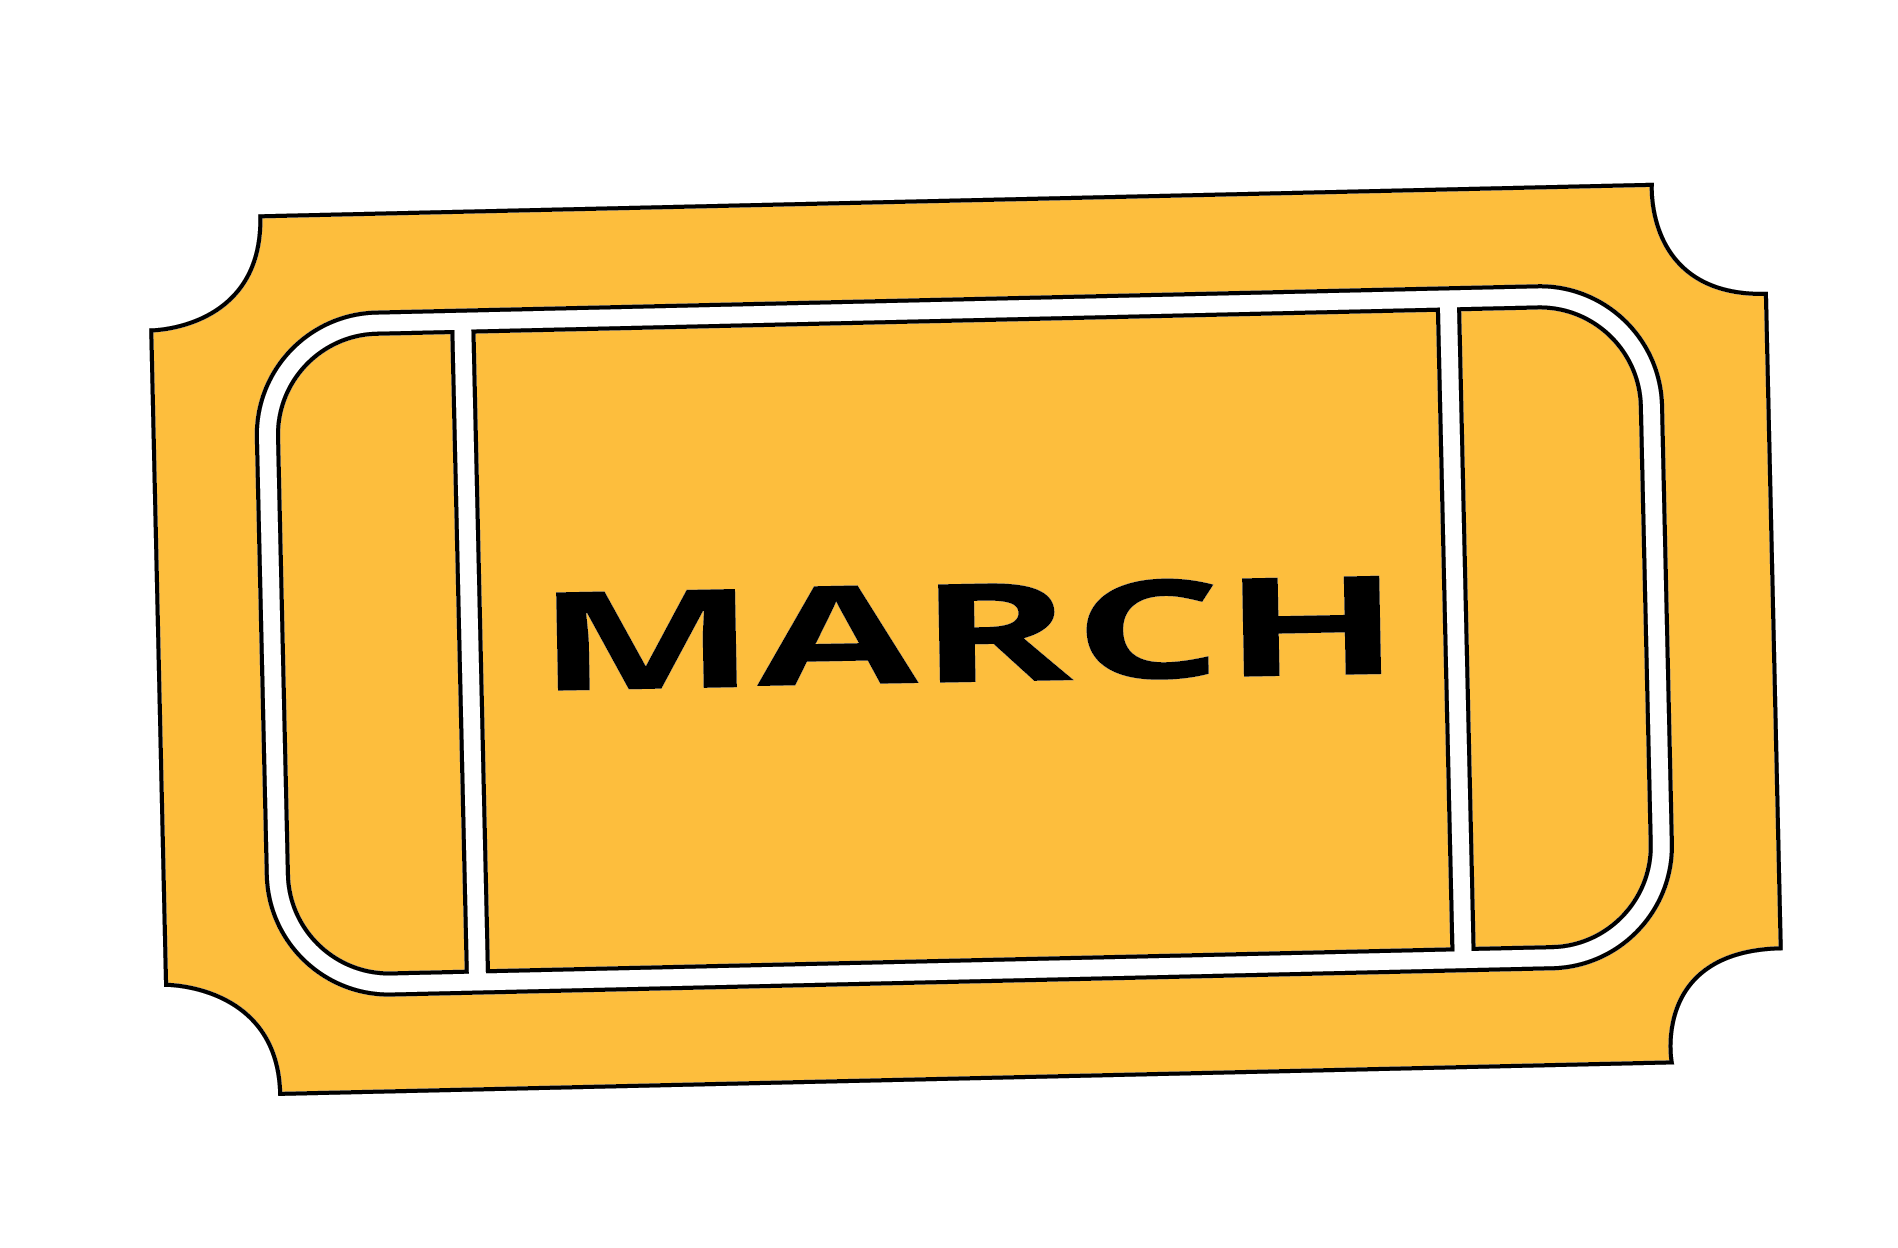 A bonus March raffle ticket. The ticket is yellow and has March written on it.